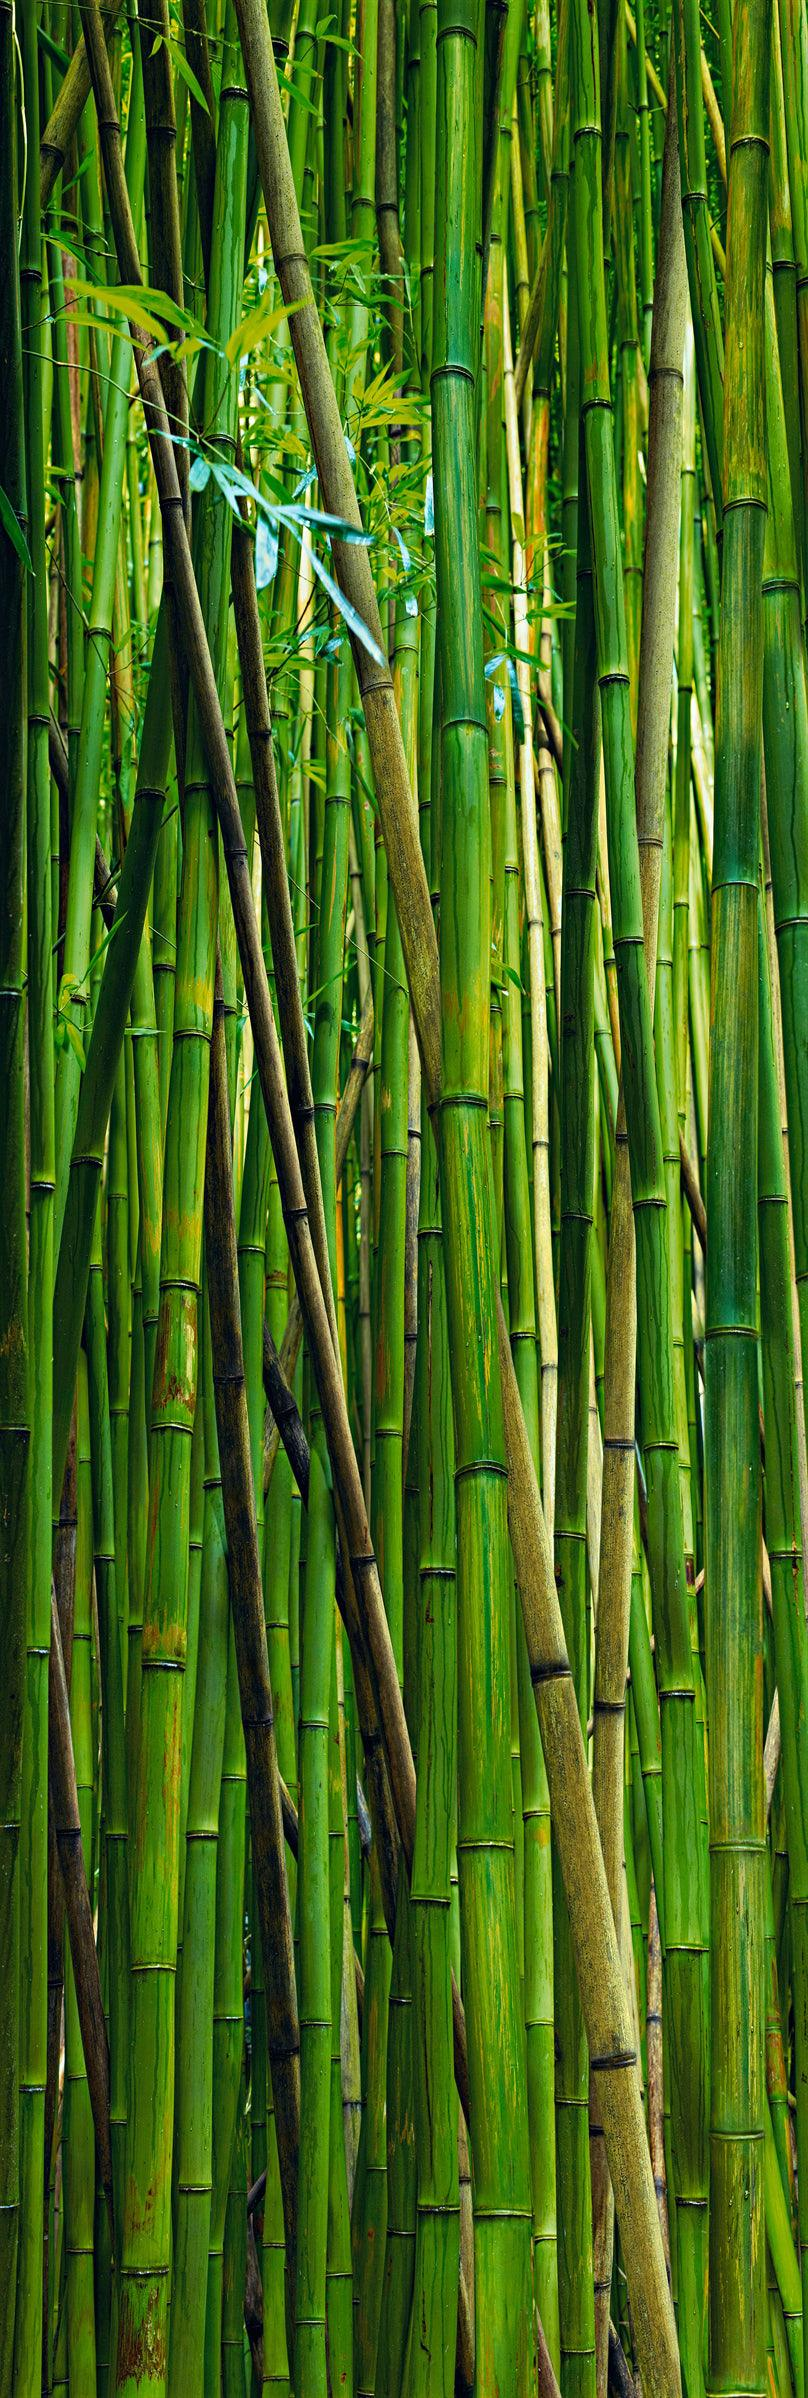 Wall of green and brown bamboo in the rainforest of Hana Hawaii